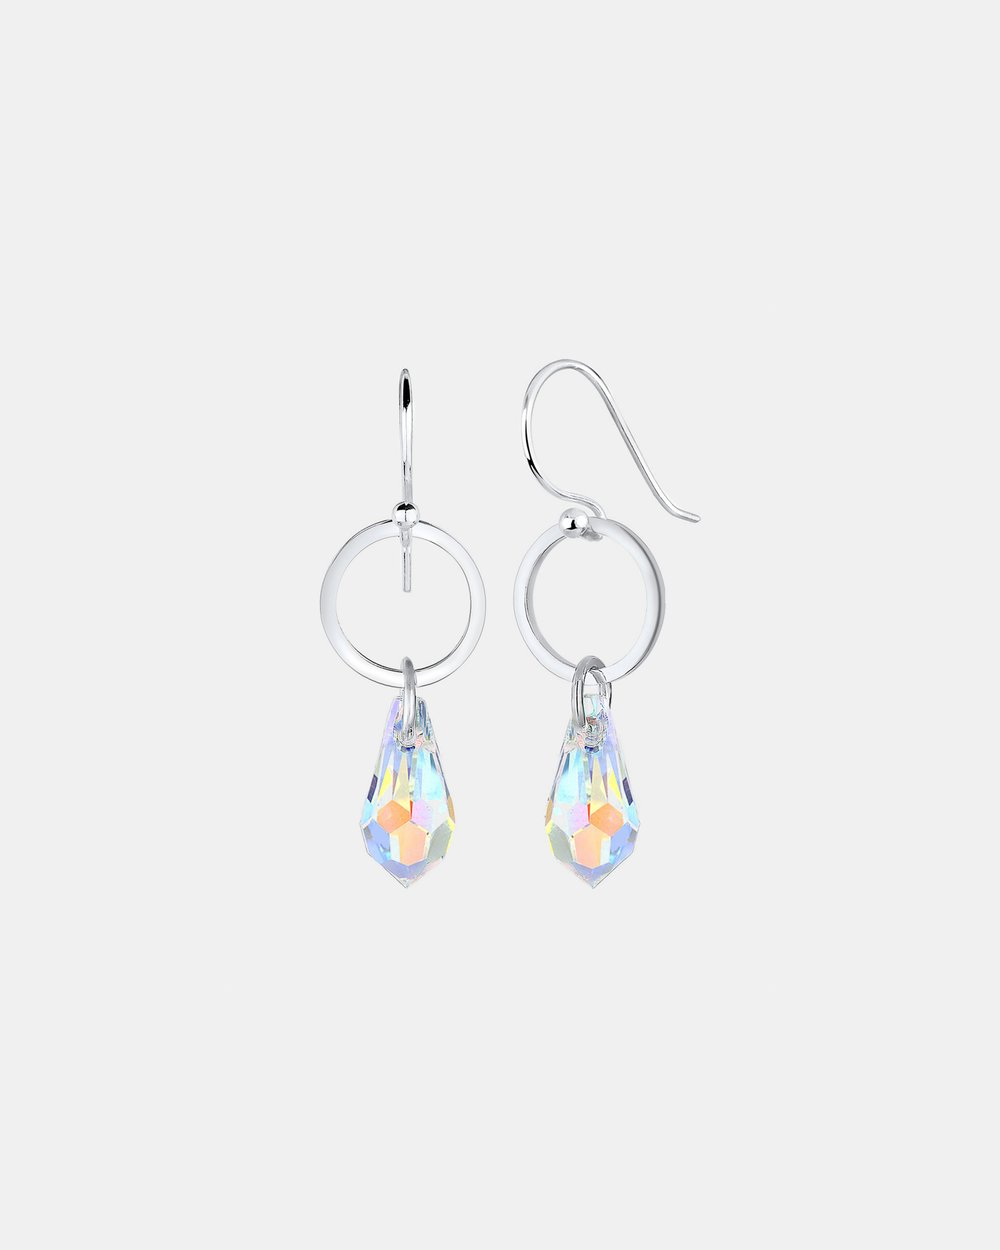 bfb1243eb2d55 Earring Drop Circle Geo Swarovski Crystals 925 Sterling Silver by ...